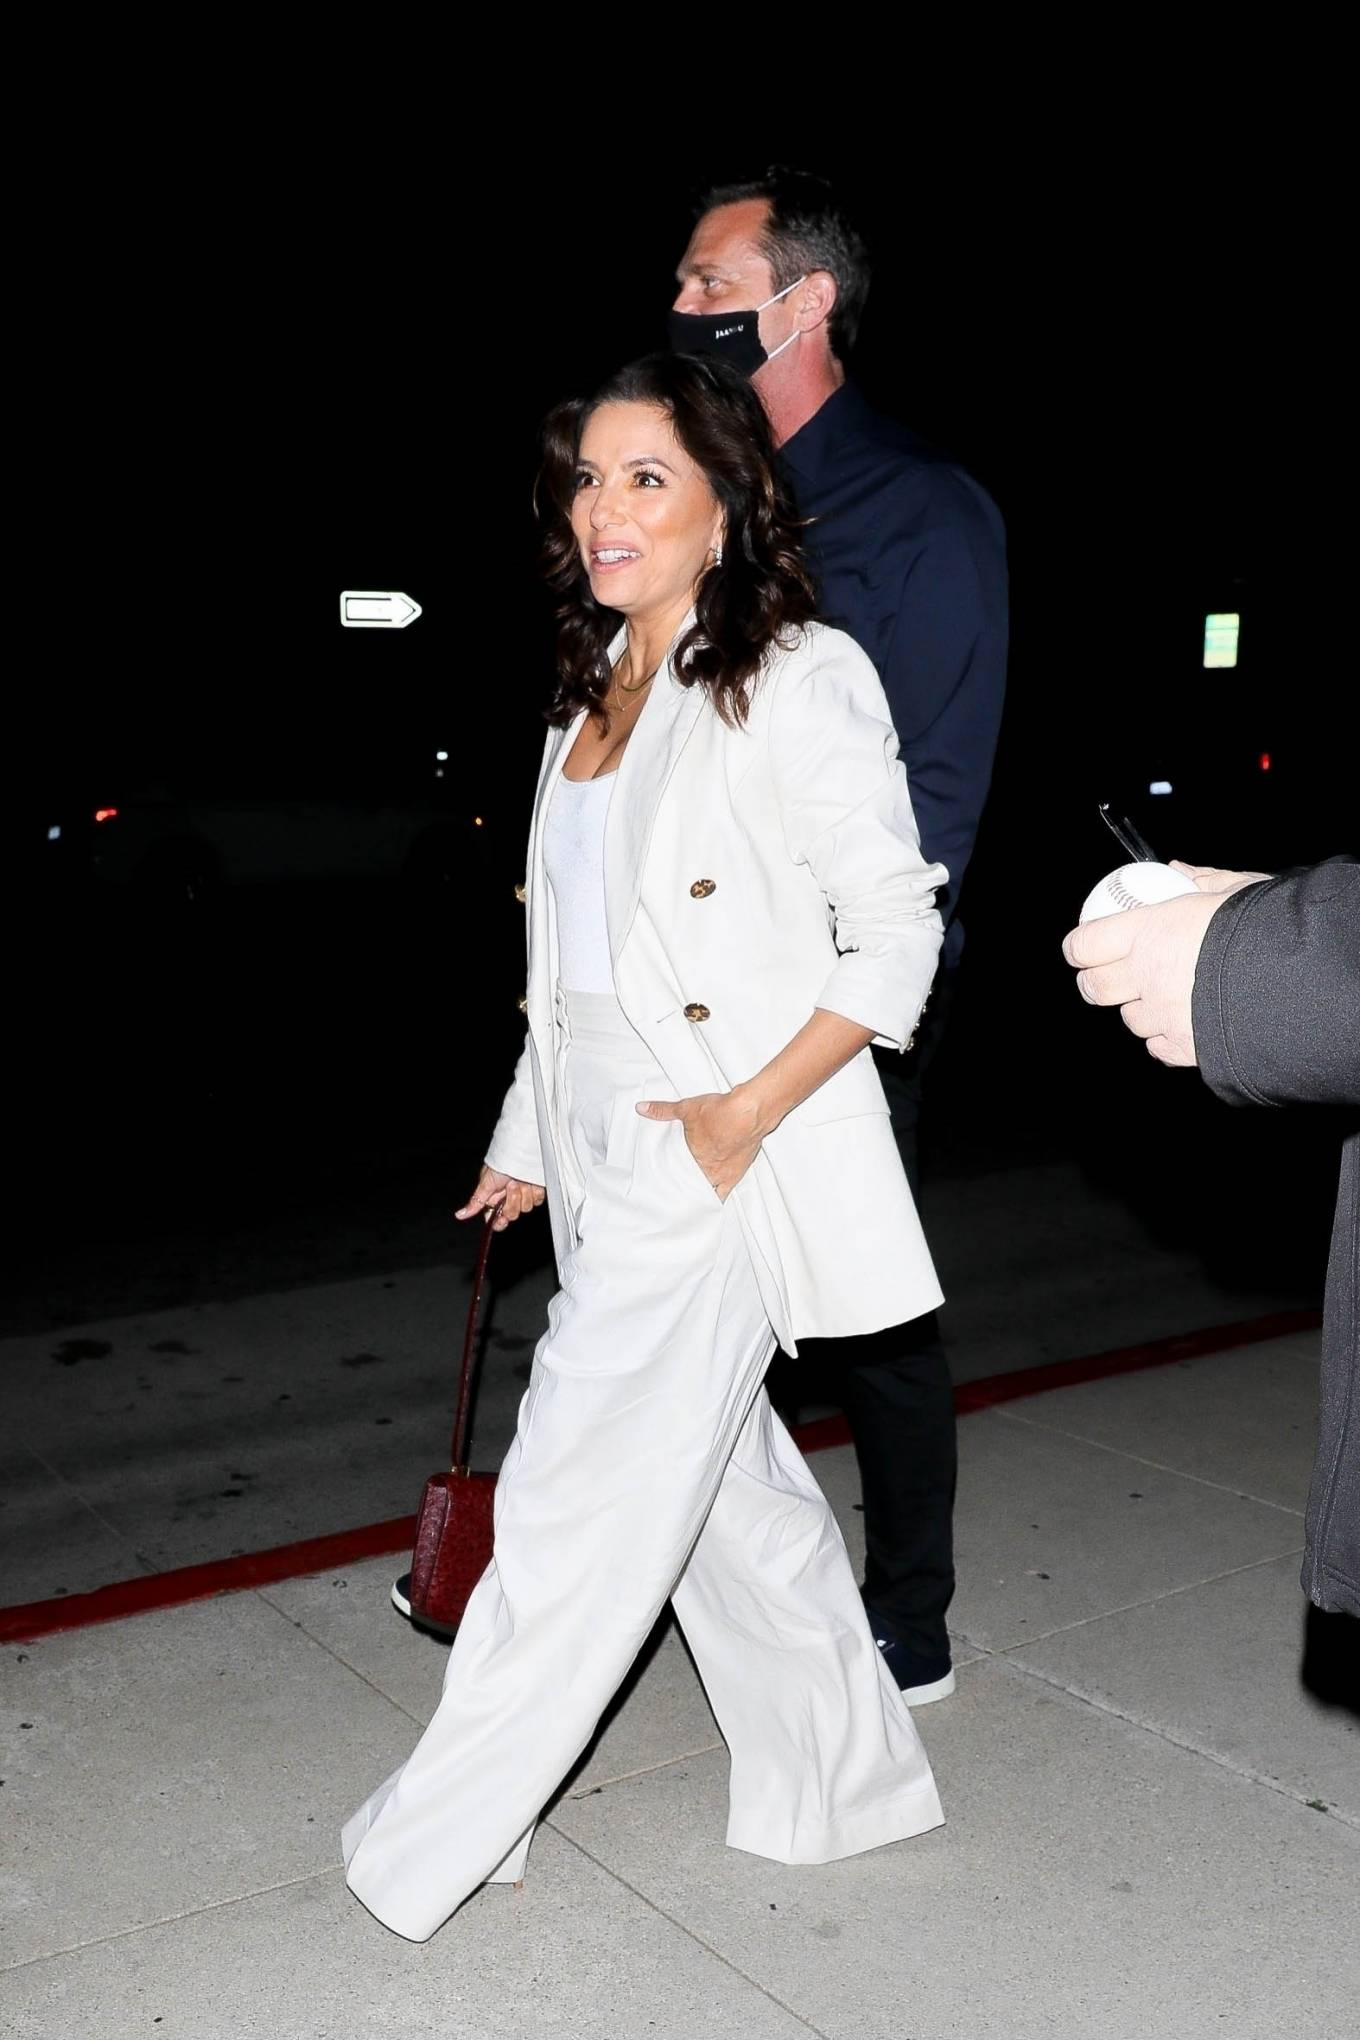 Eva Longoria 2021 : Eva Longoria – in all white as she steps out with friends in Beverly Hills-10